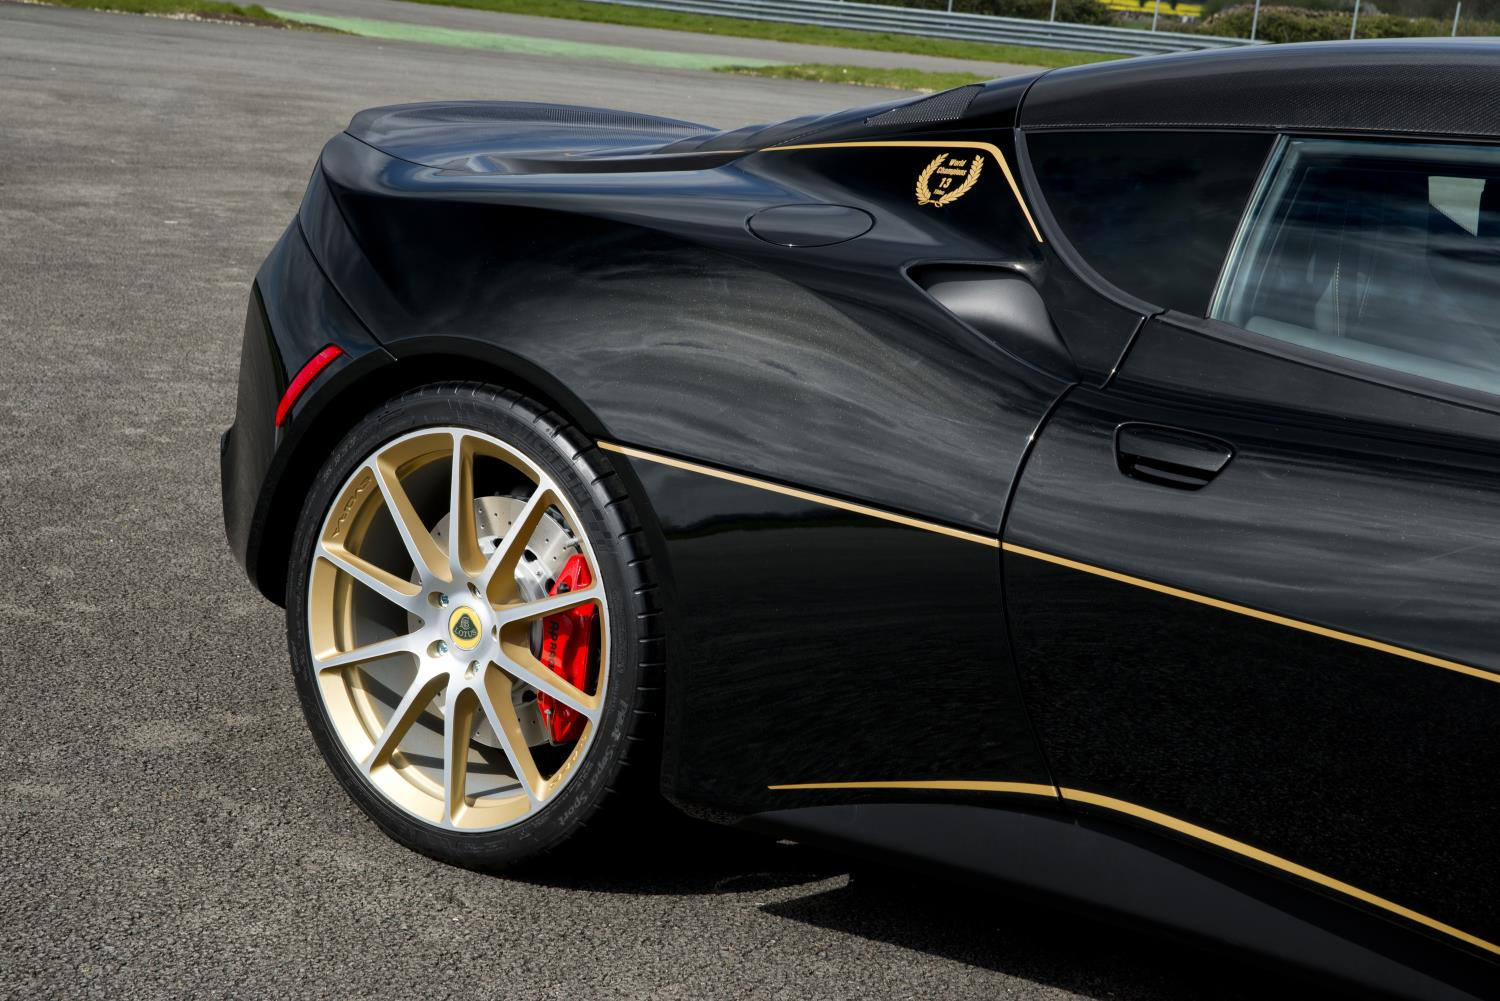 John Player Special F1 Livery Looks Awesome On Lotus Evora